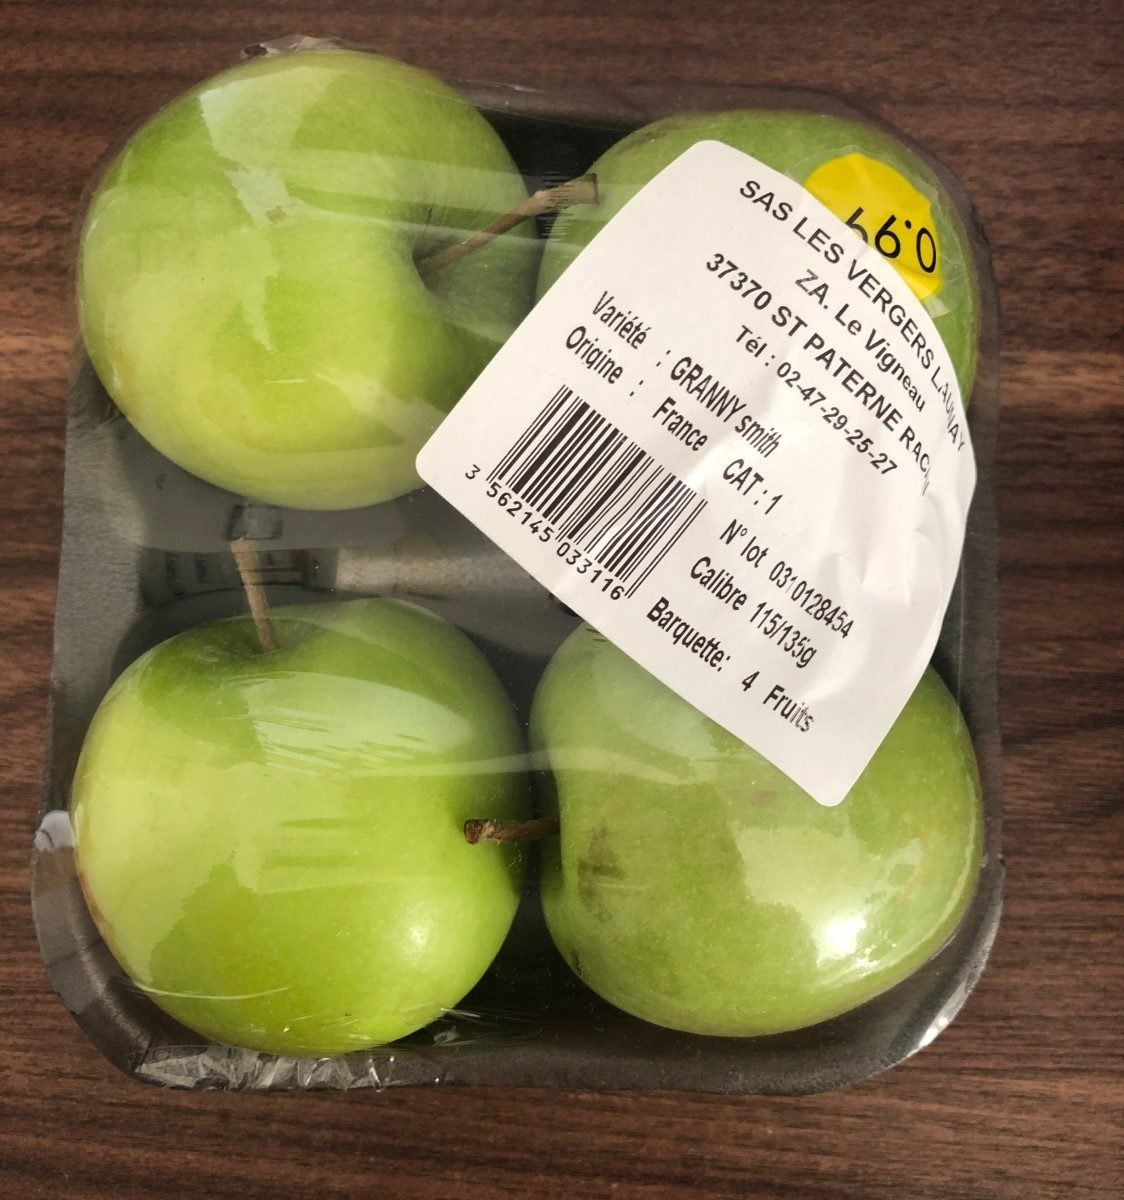 Pomme Granny Smith - Product